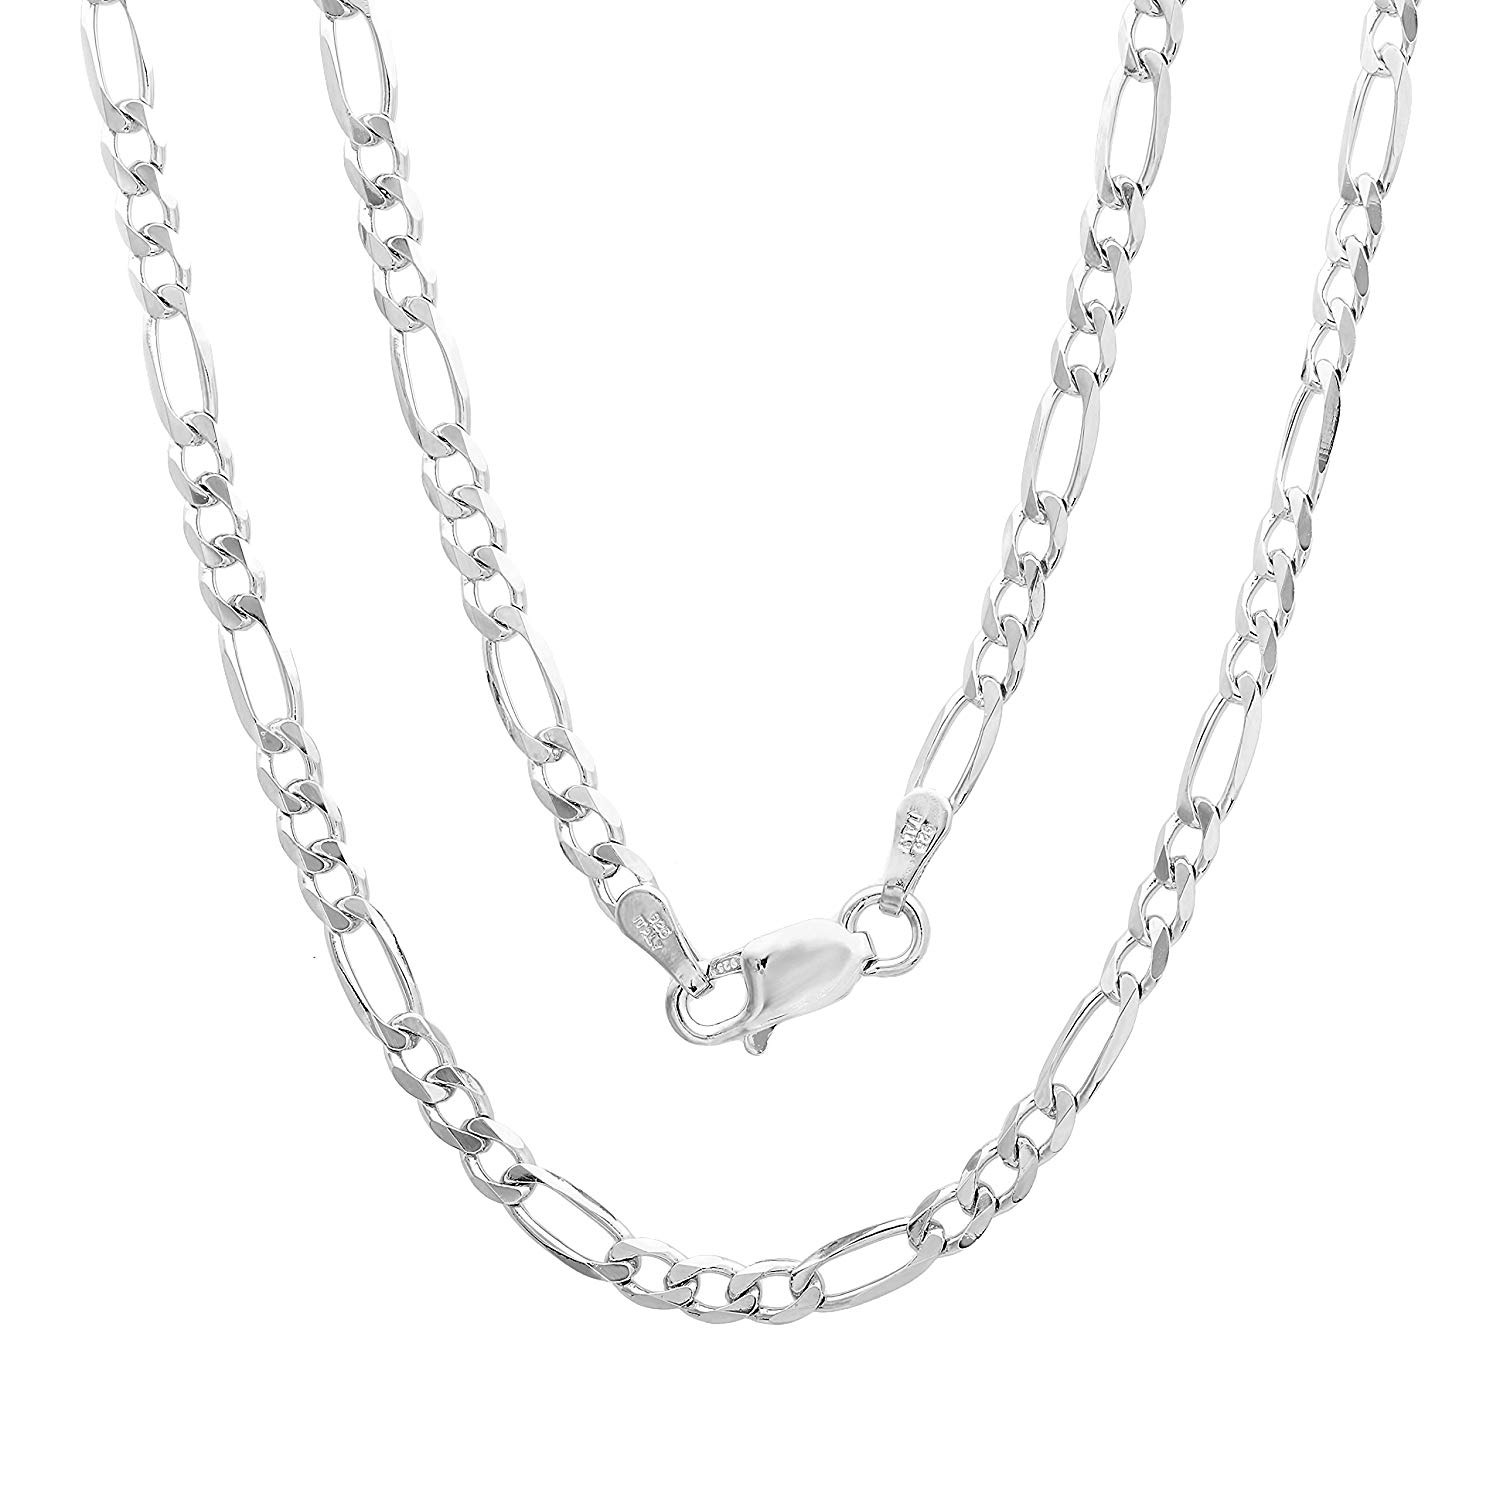 Sterling Silver 8.6 mm Wide Figaro Chain 30 Inch Long